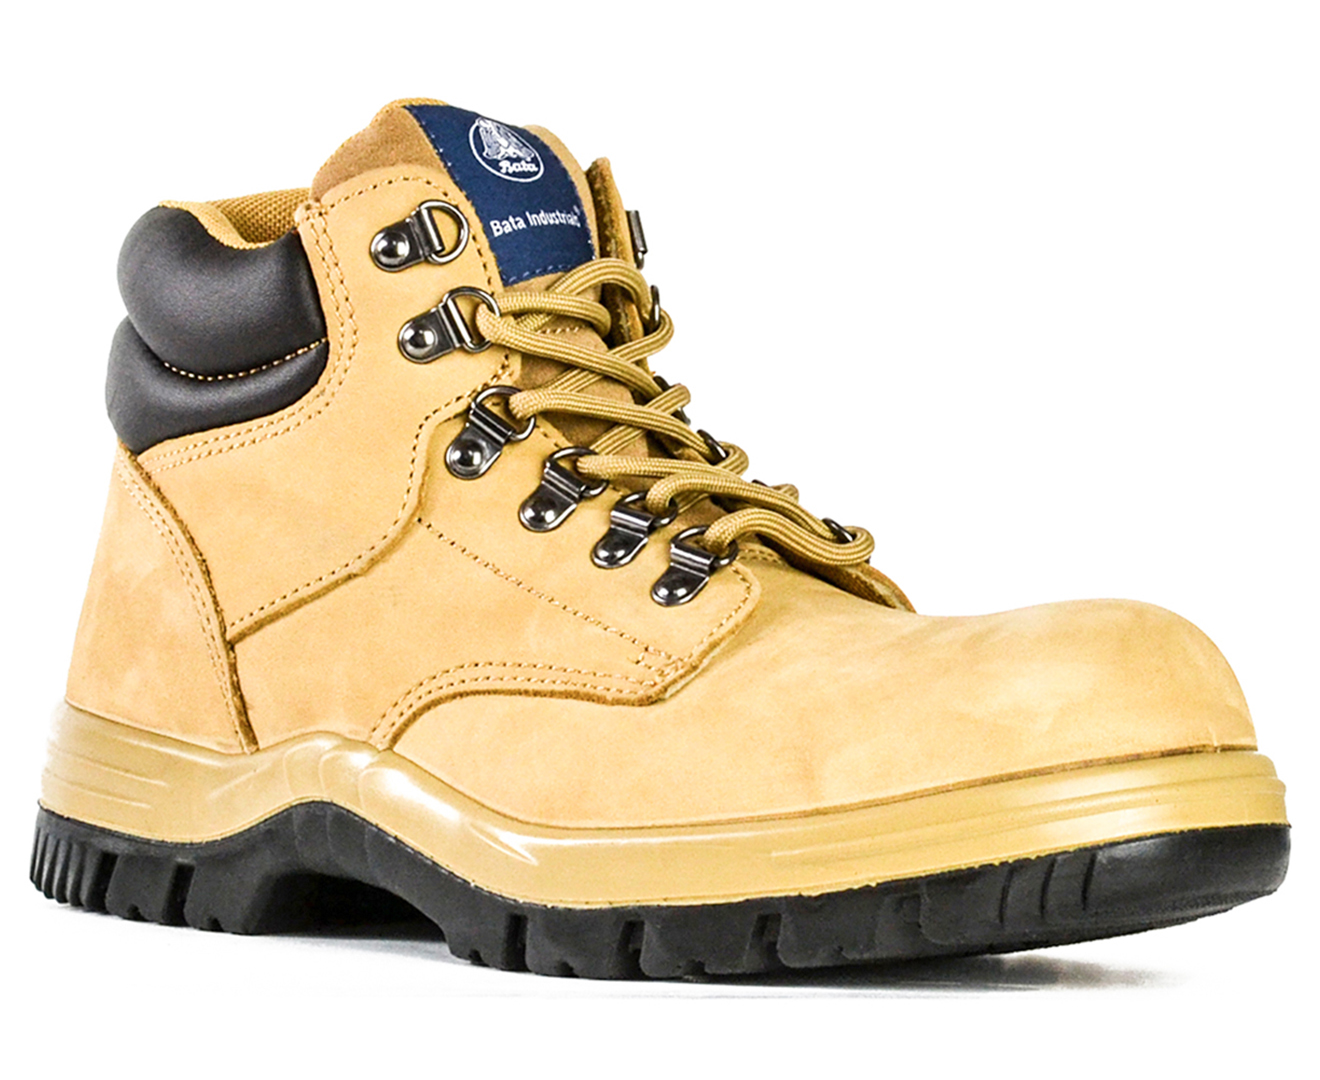 f70253e345f Bata Industrials Natural Titan Extra Wide Safety Boot - Wheat